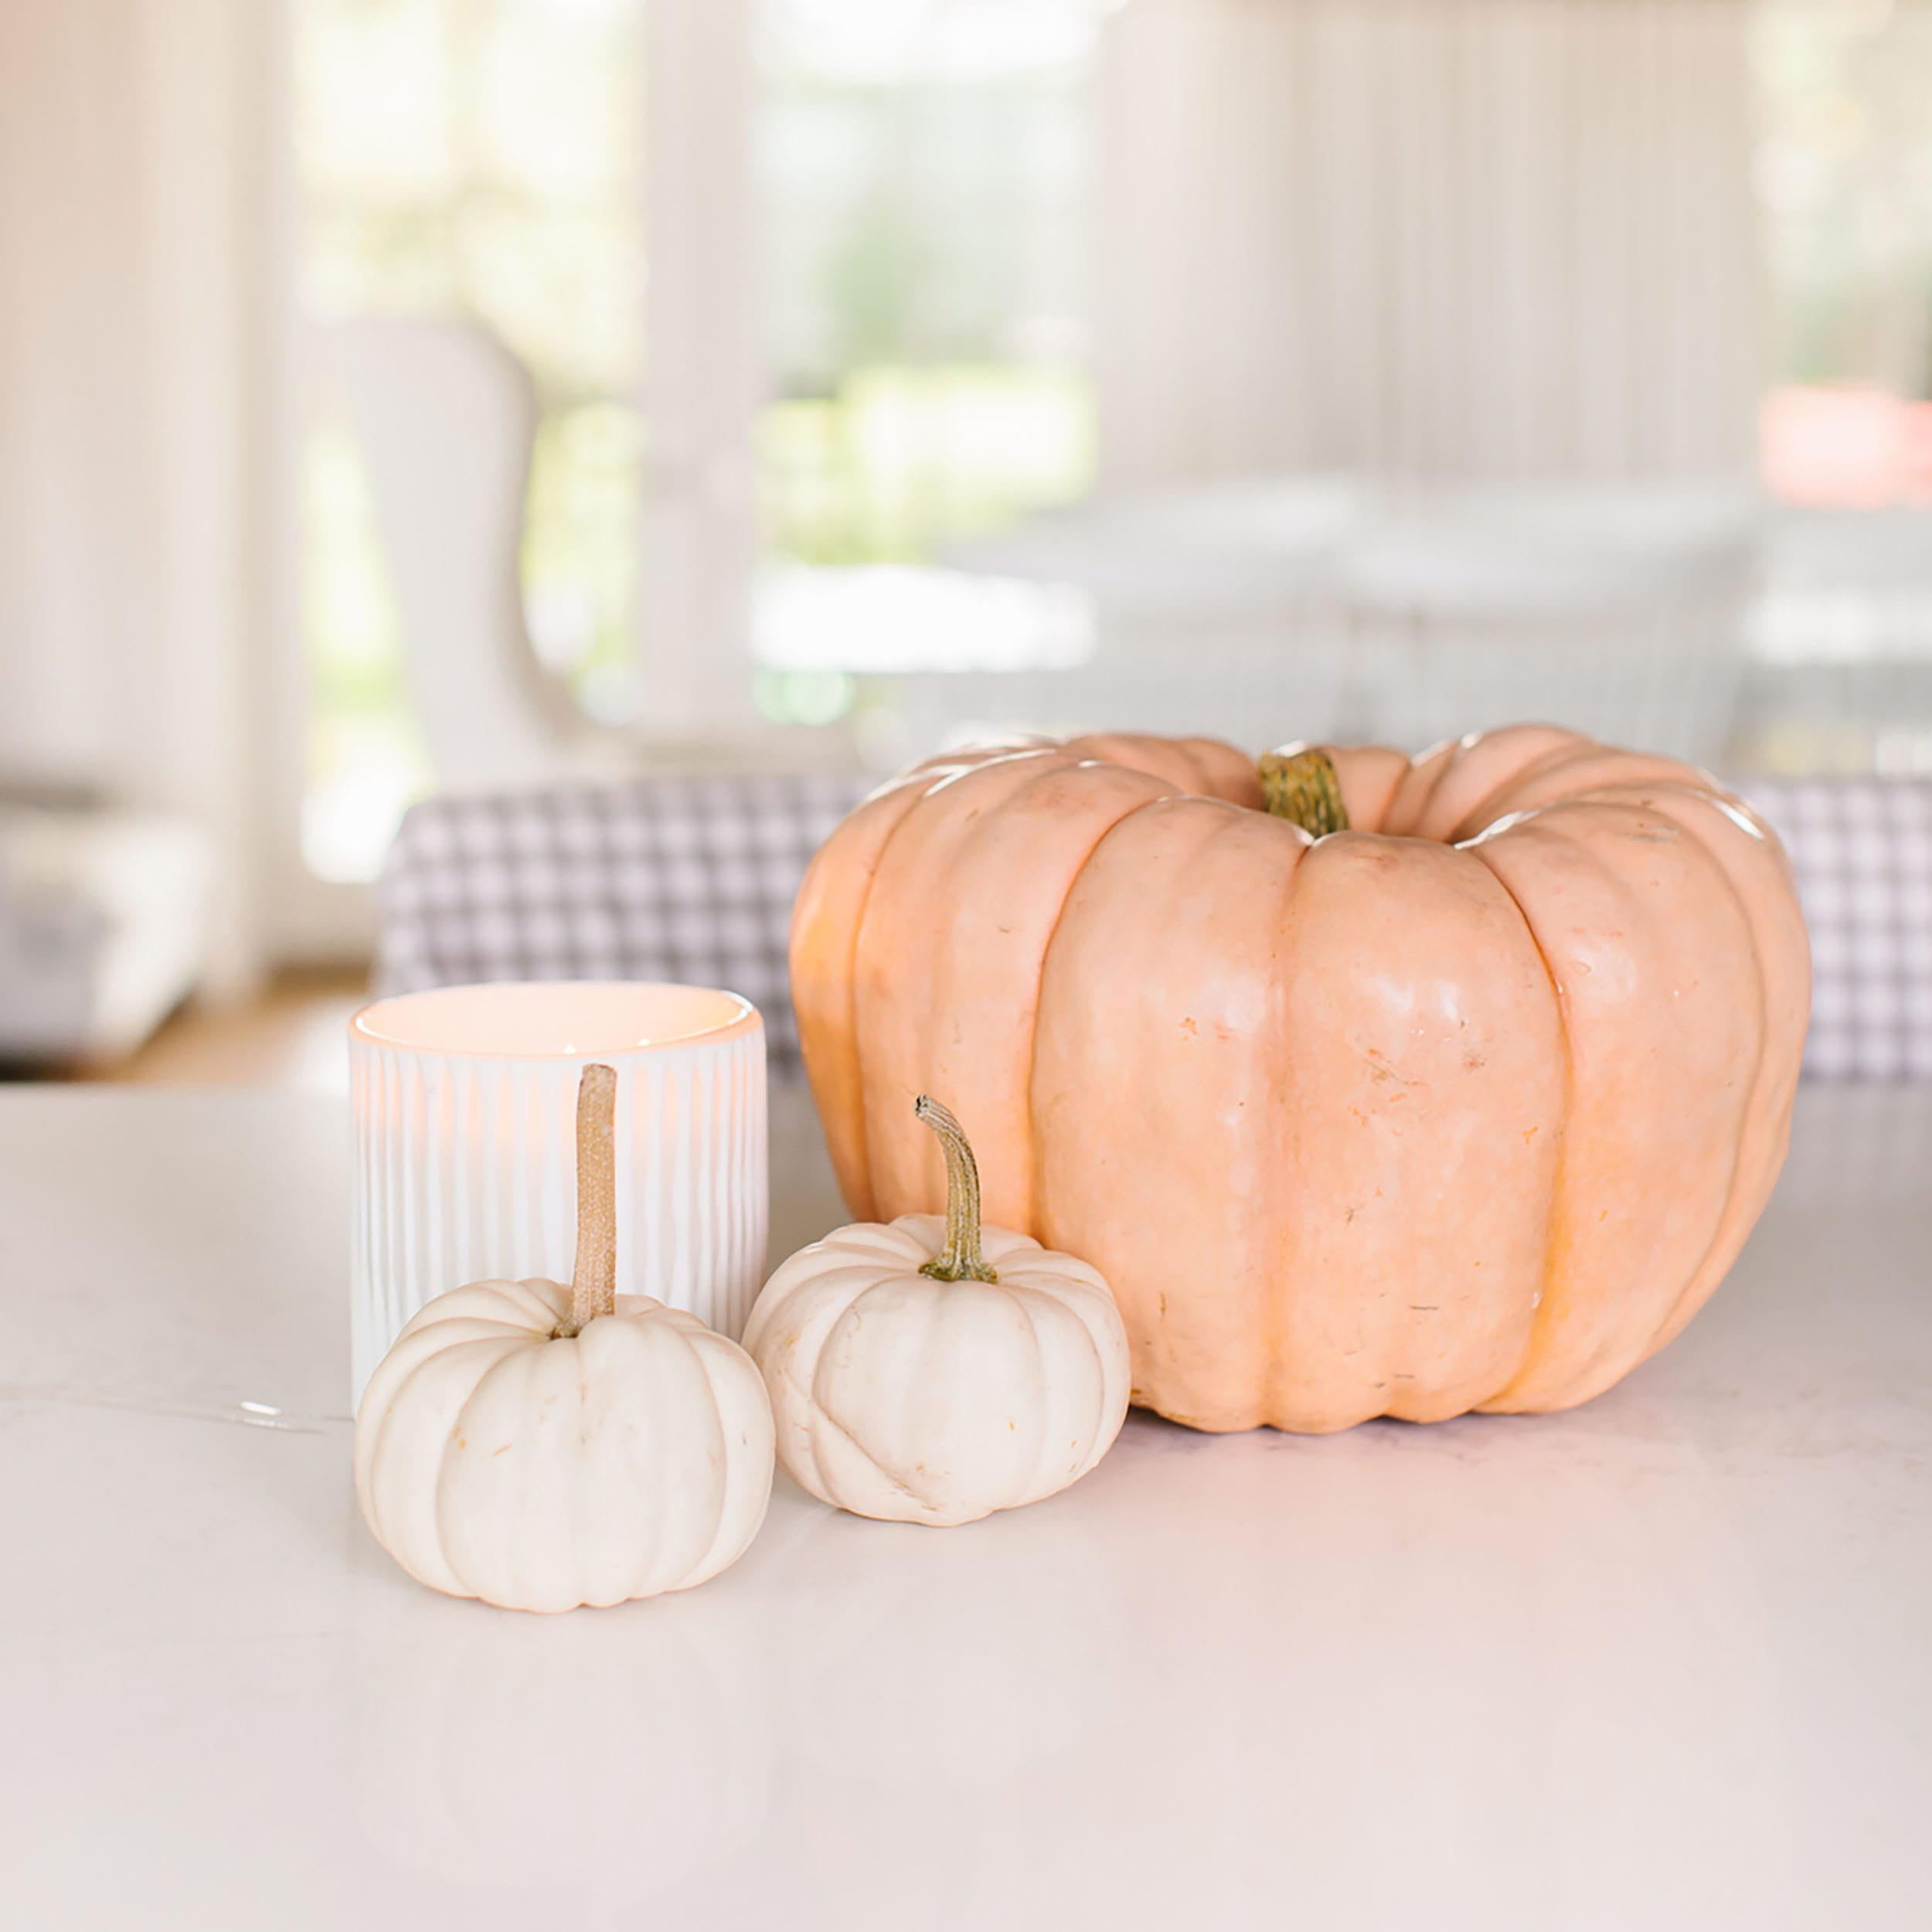 Shifting Seasons: Cozy Fall Decor Faves